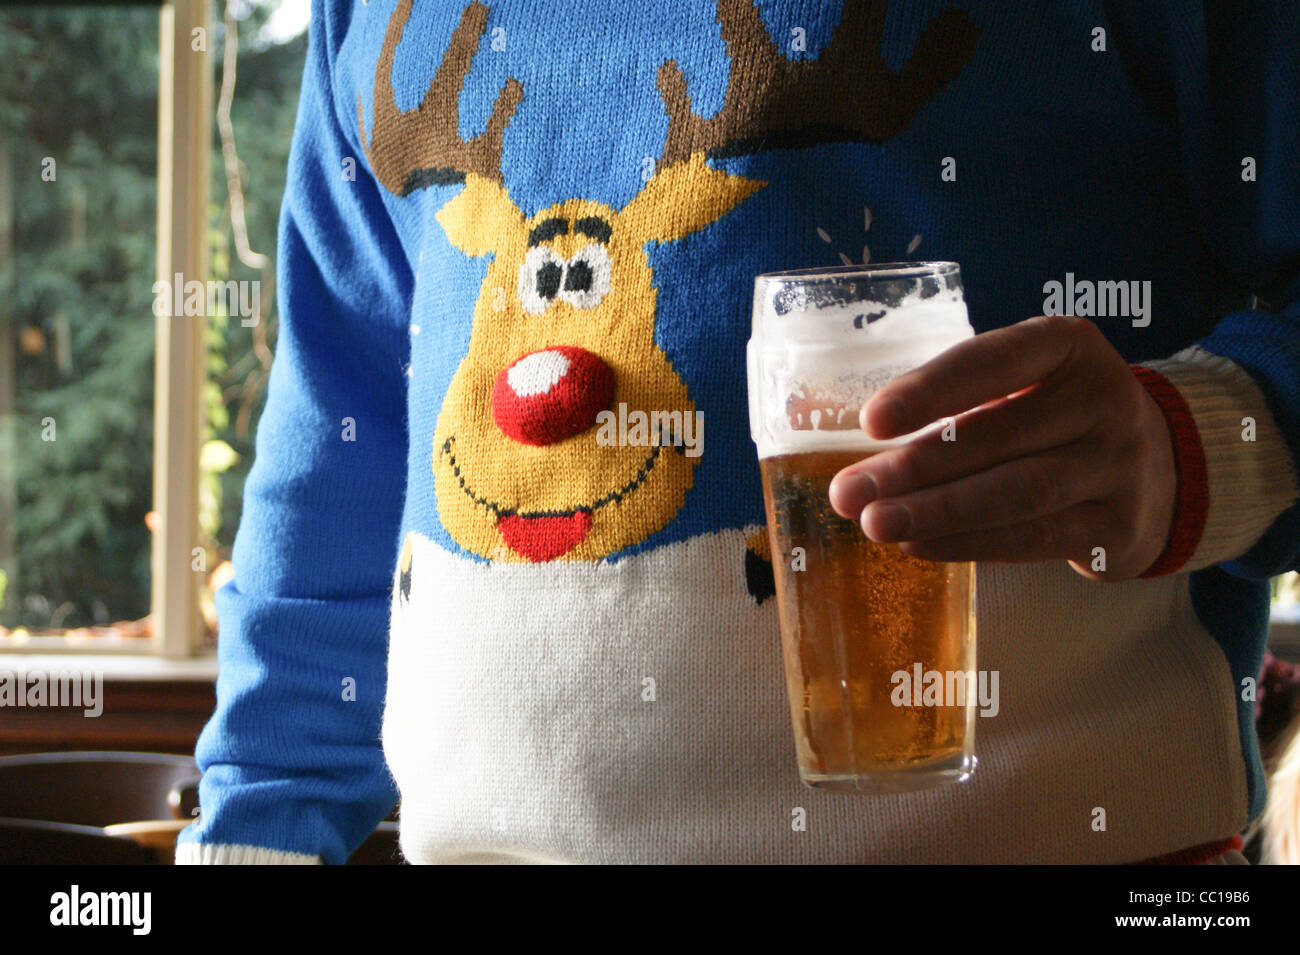 a-man-with-a-pint-of-fosters-lager-beer-